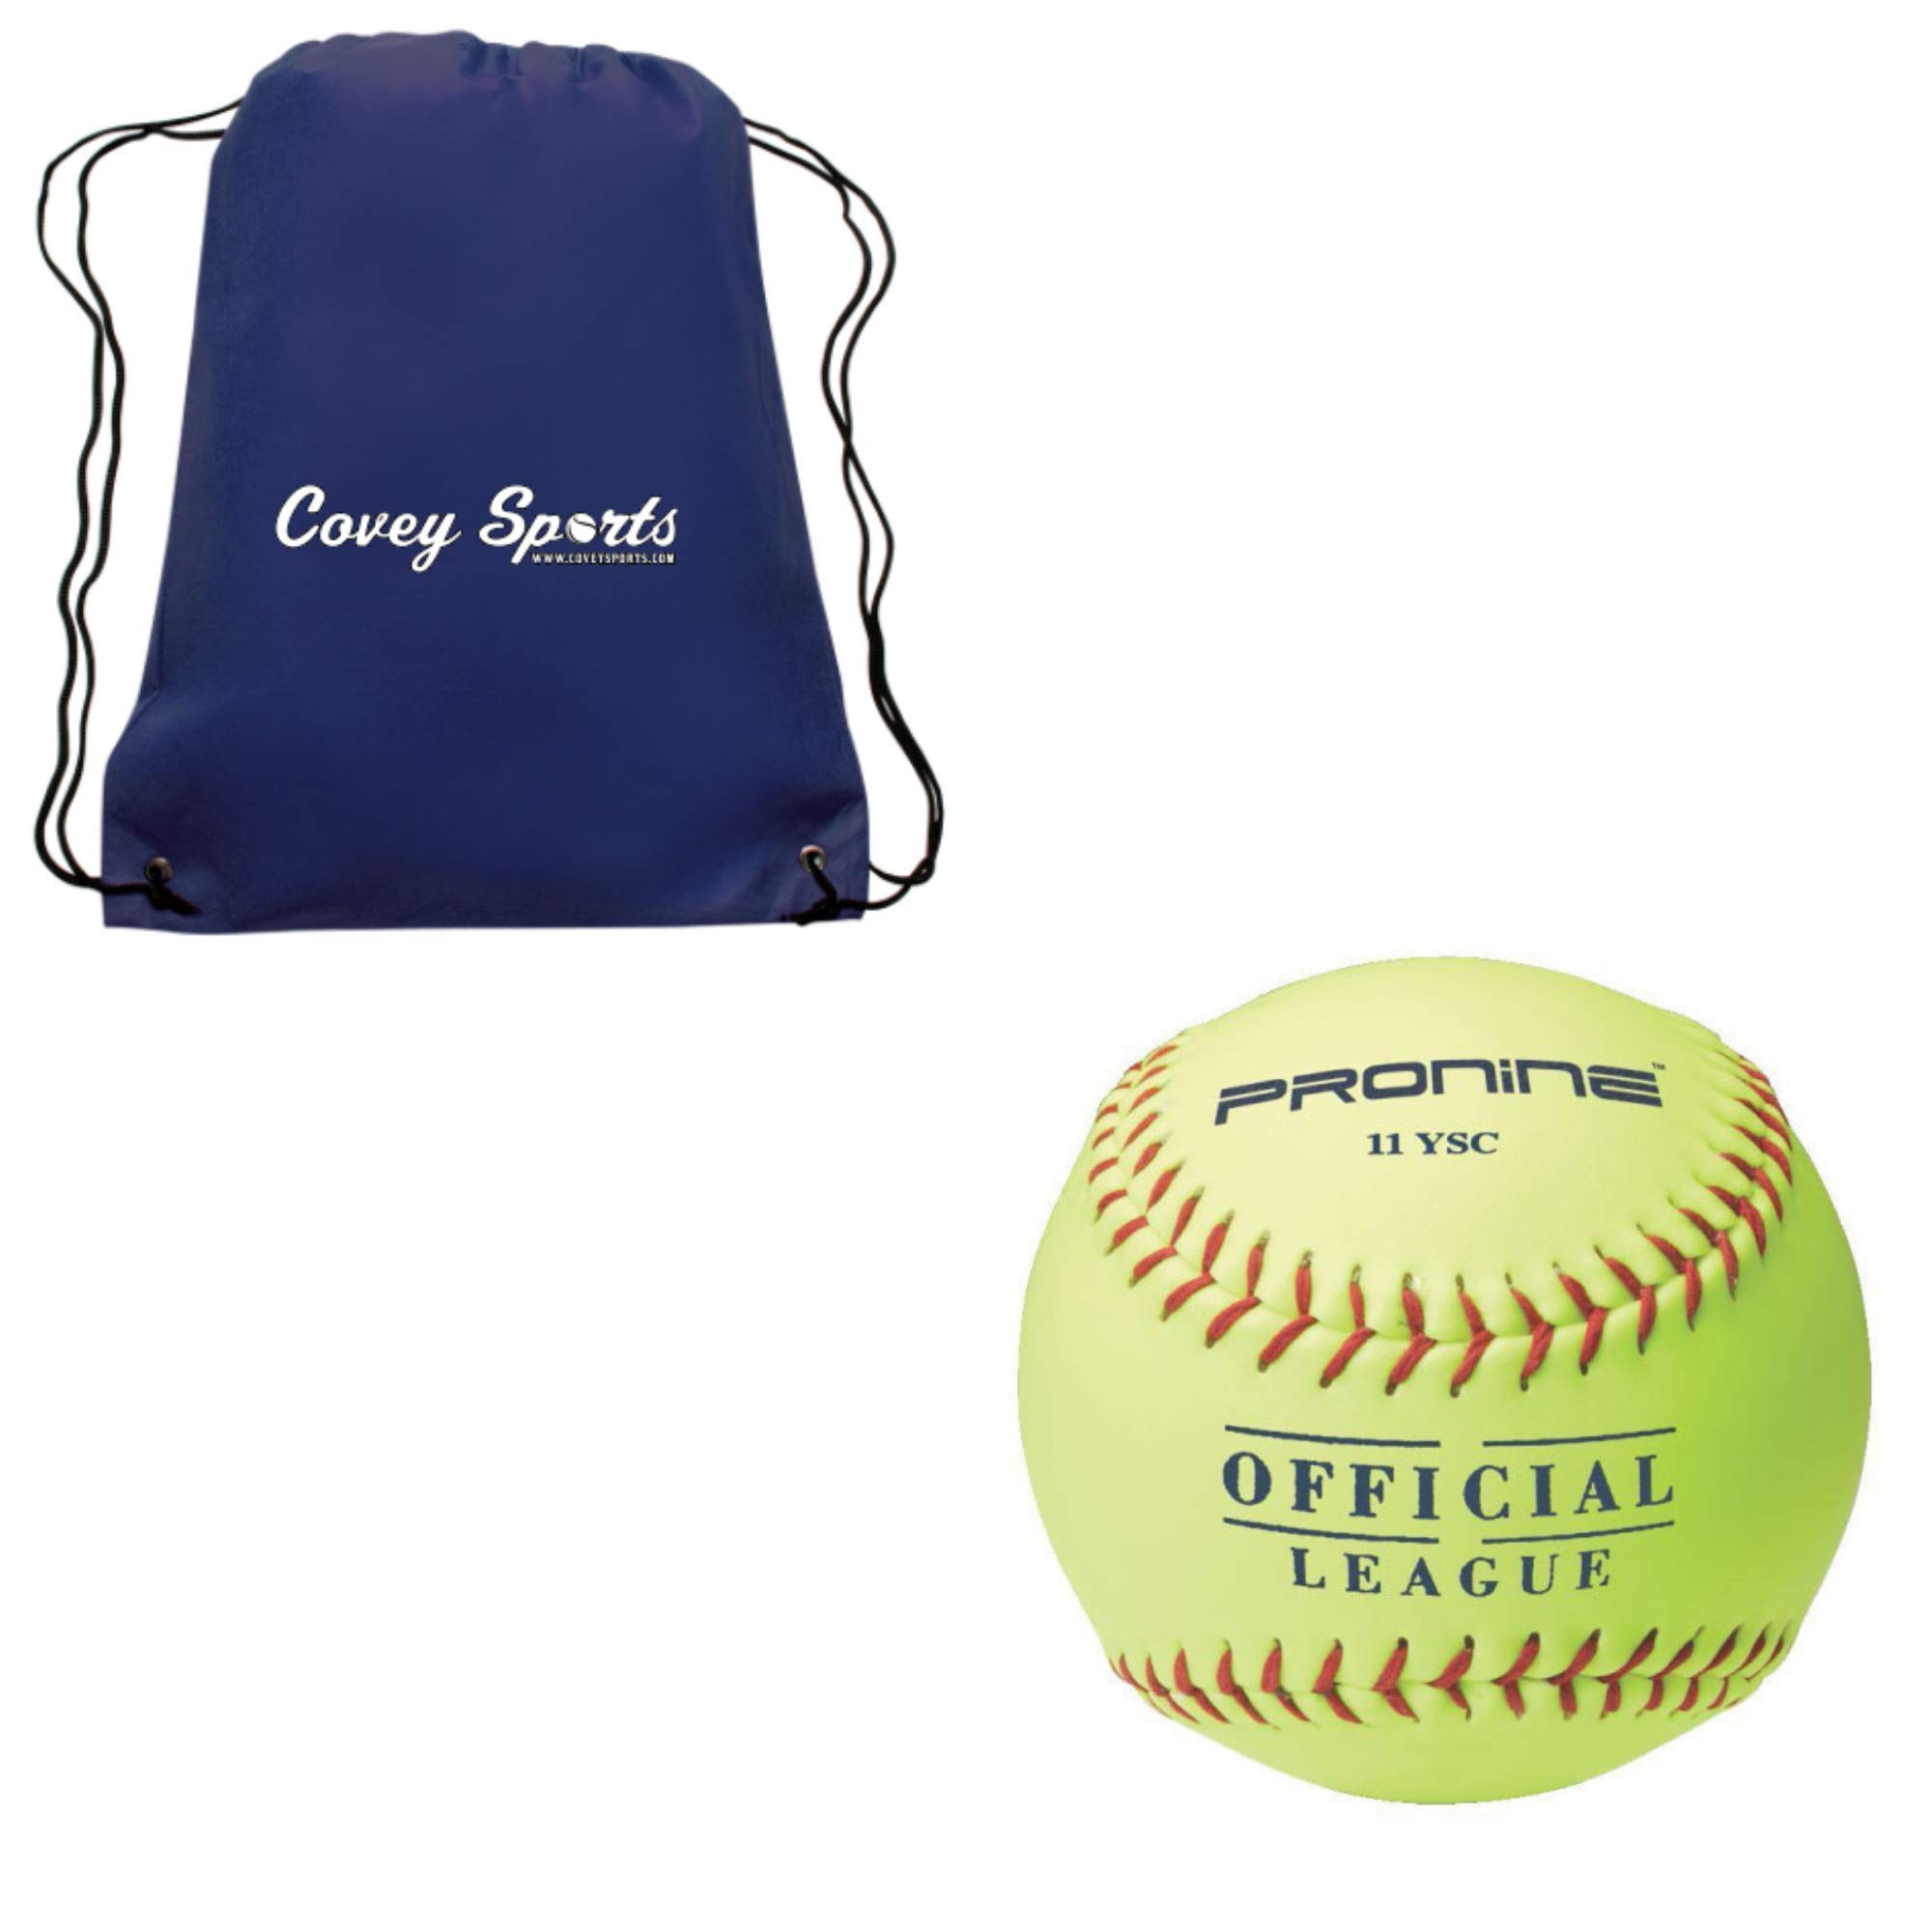 ProNine 11 Inch Soft-Core Fastpitch Softball for 10U Ages (6-Balls) Bundled with Covey Sports Drawstring Carrying Bag